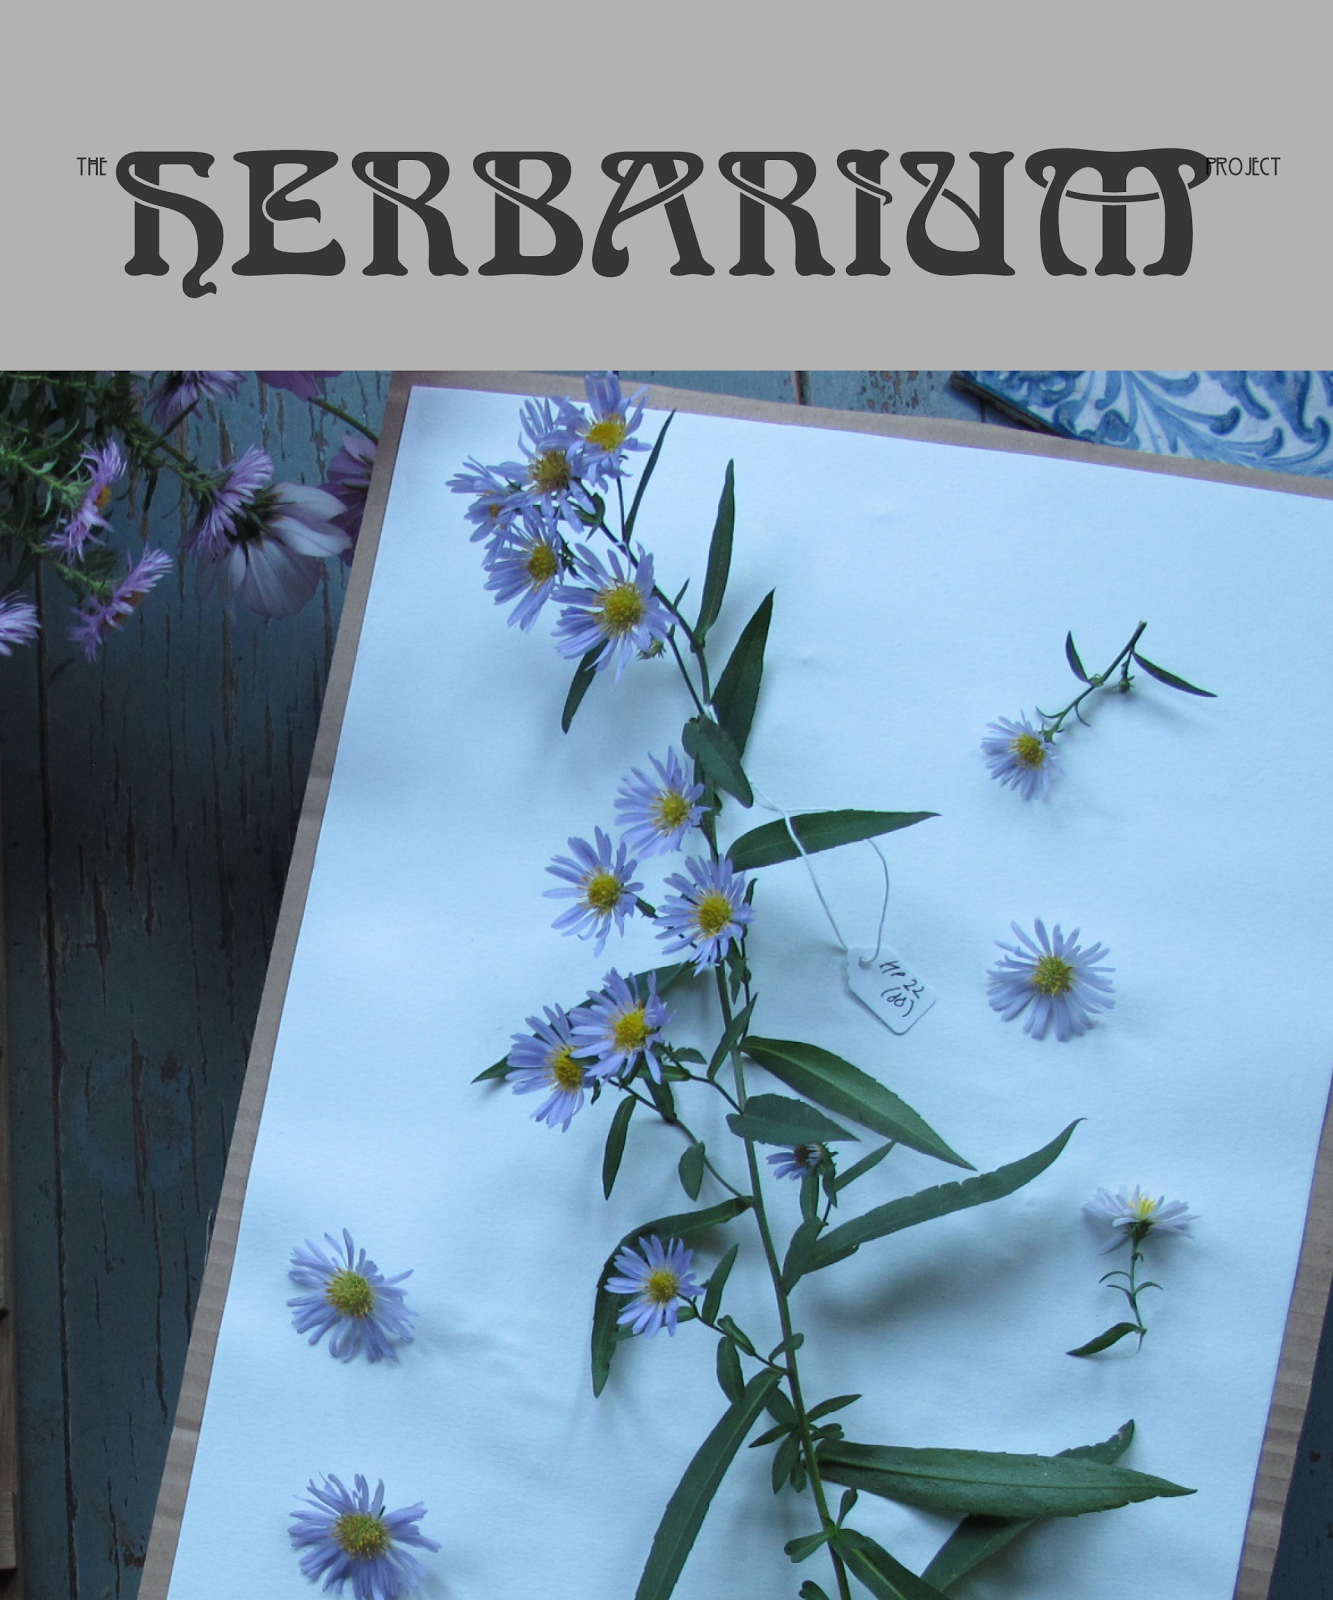 BACK TO THE HERBARIUM PROJECT